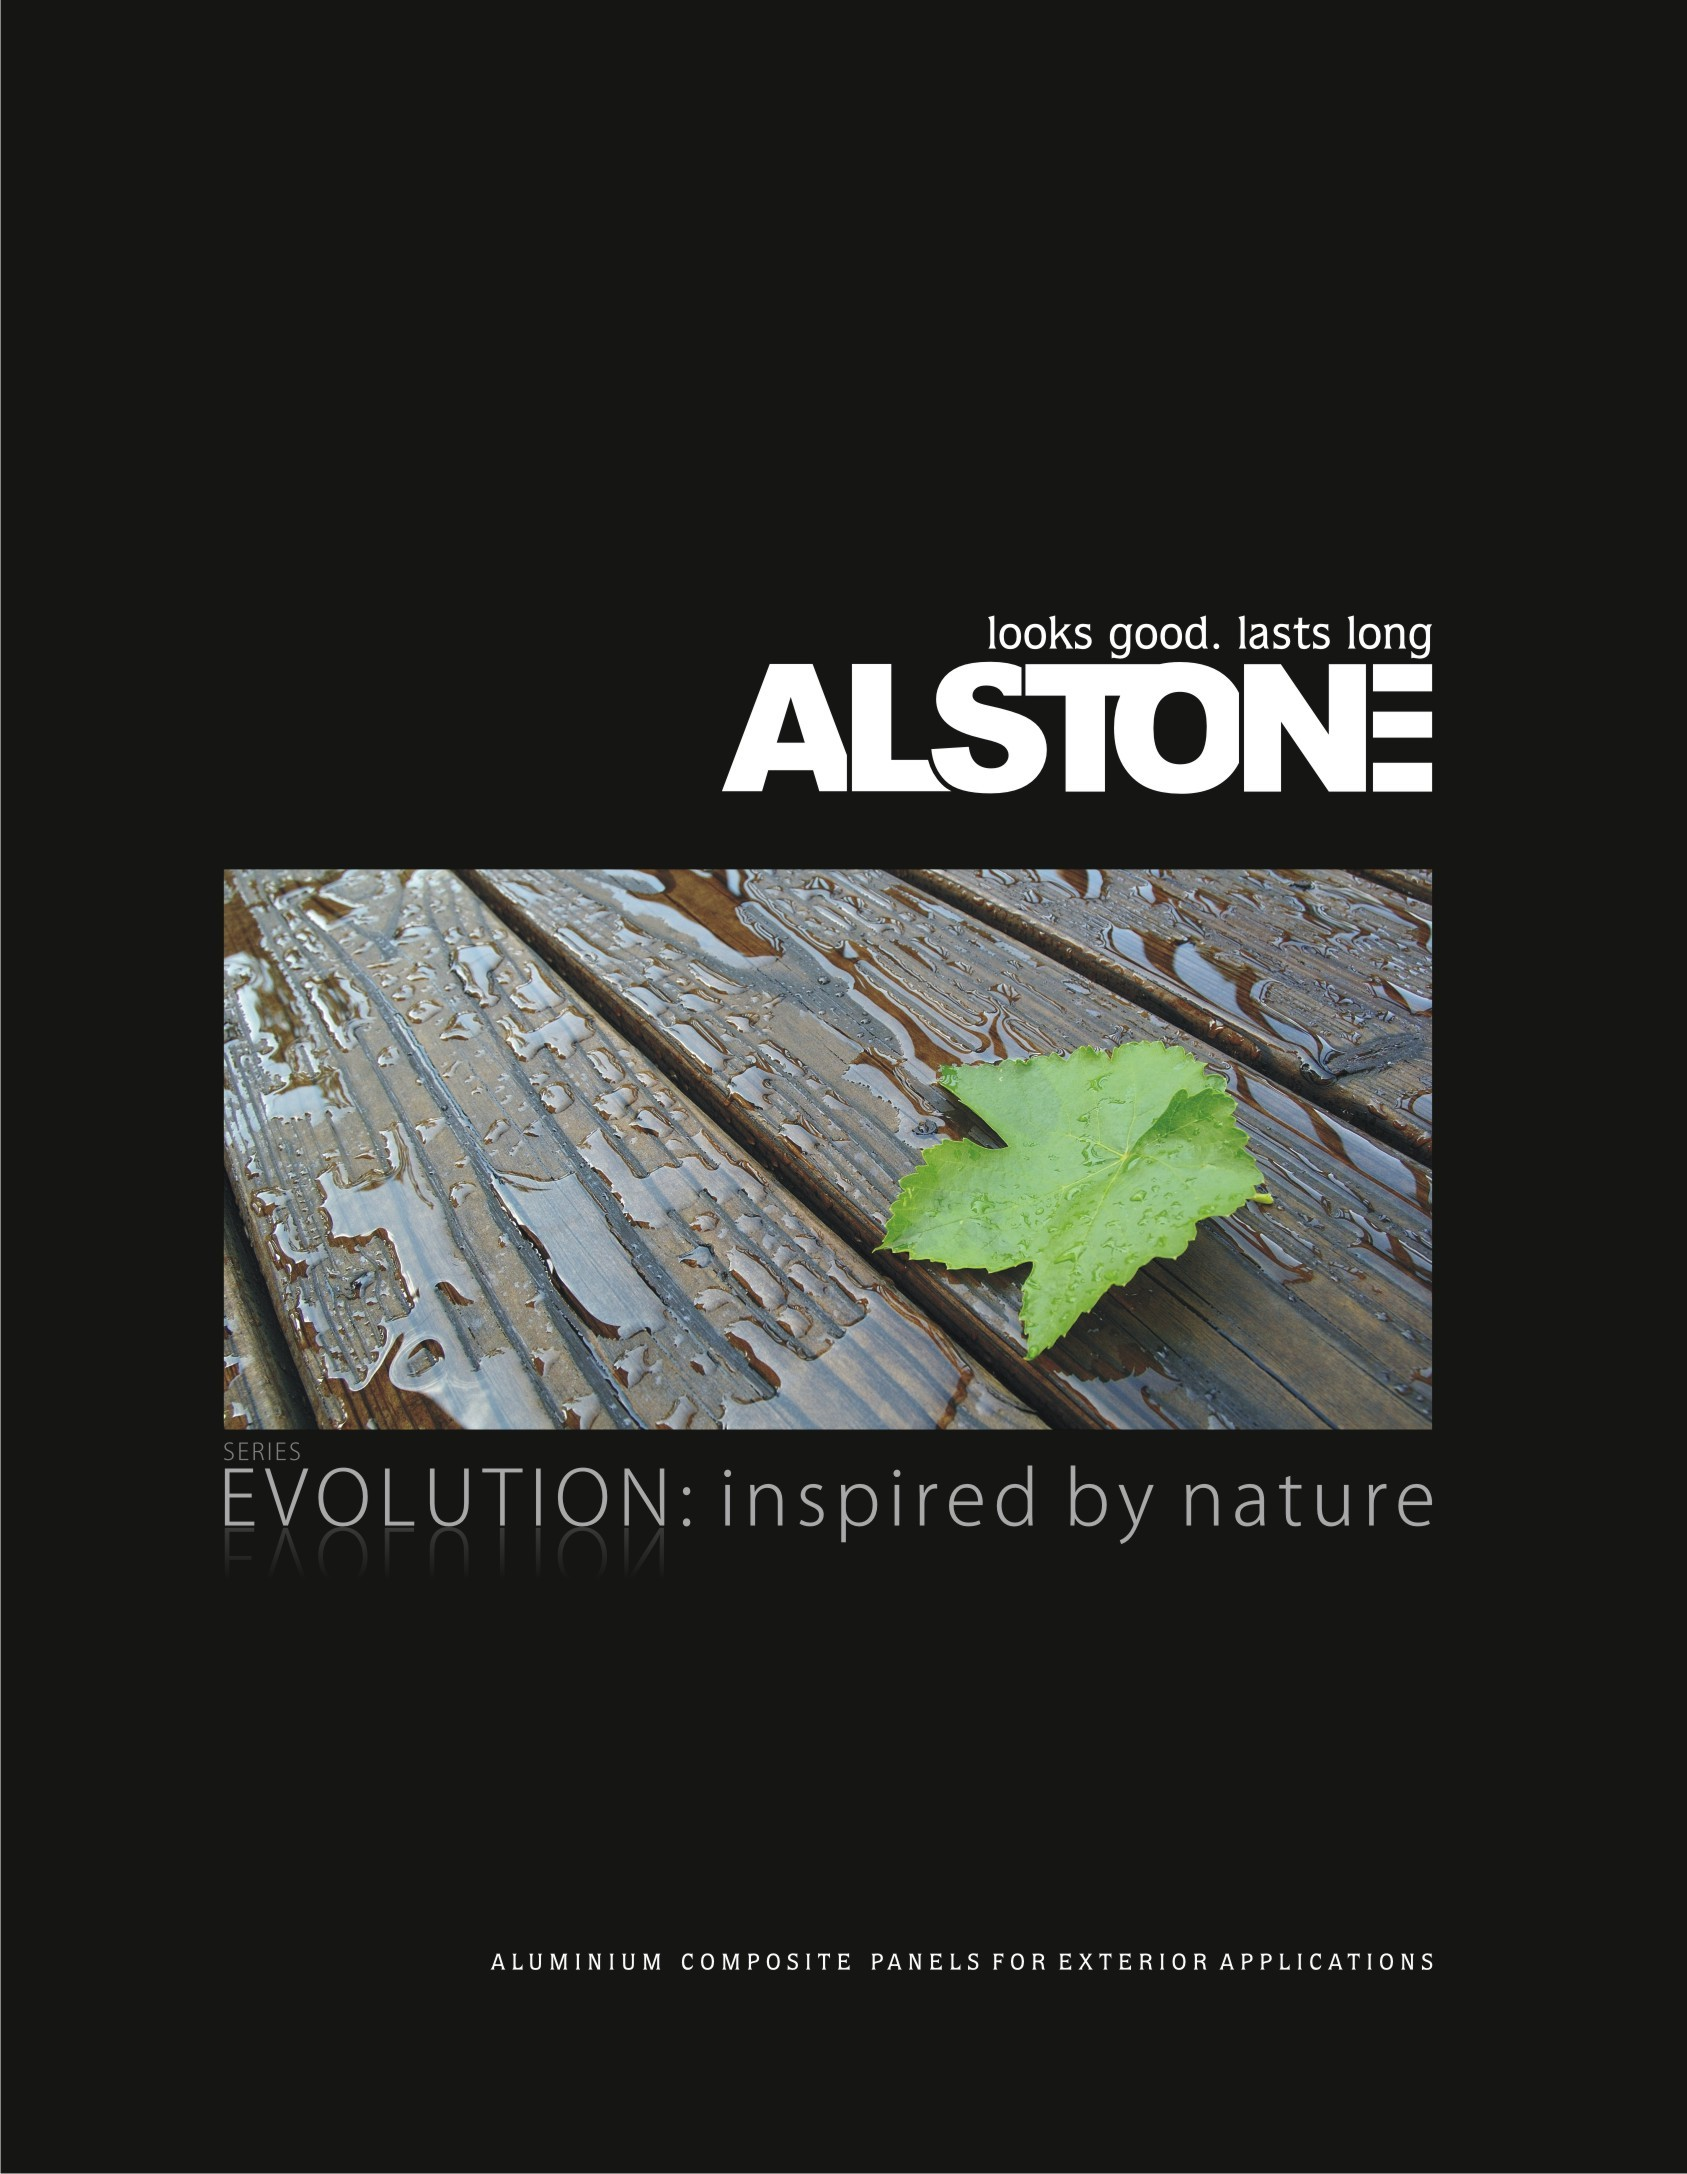 ALSTONE Products Catalogue